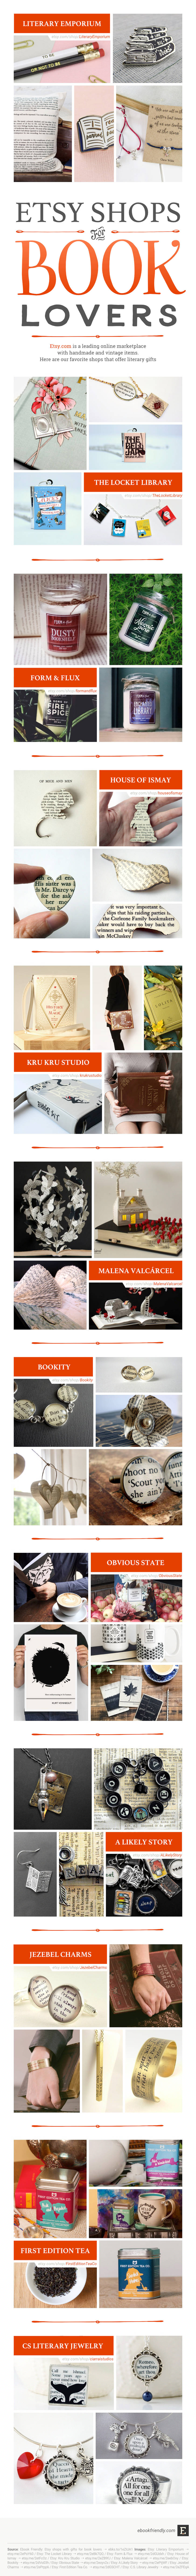 12 best Etsy shops for book lovers (infographic)   Ebook Friendly